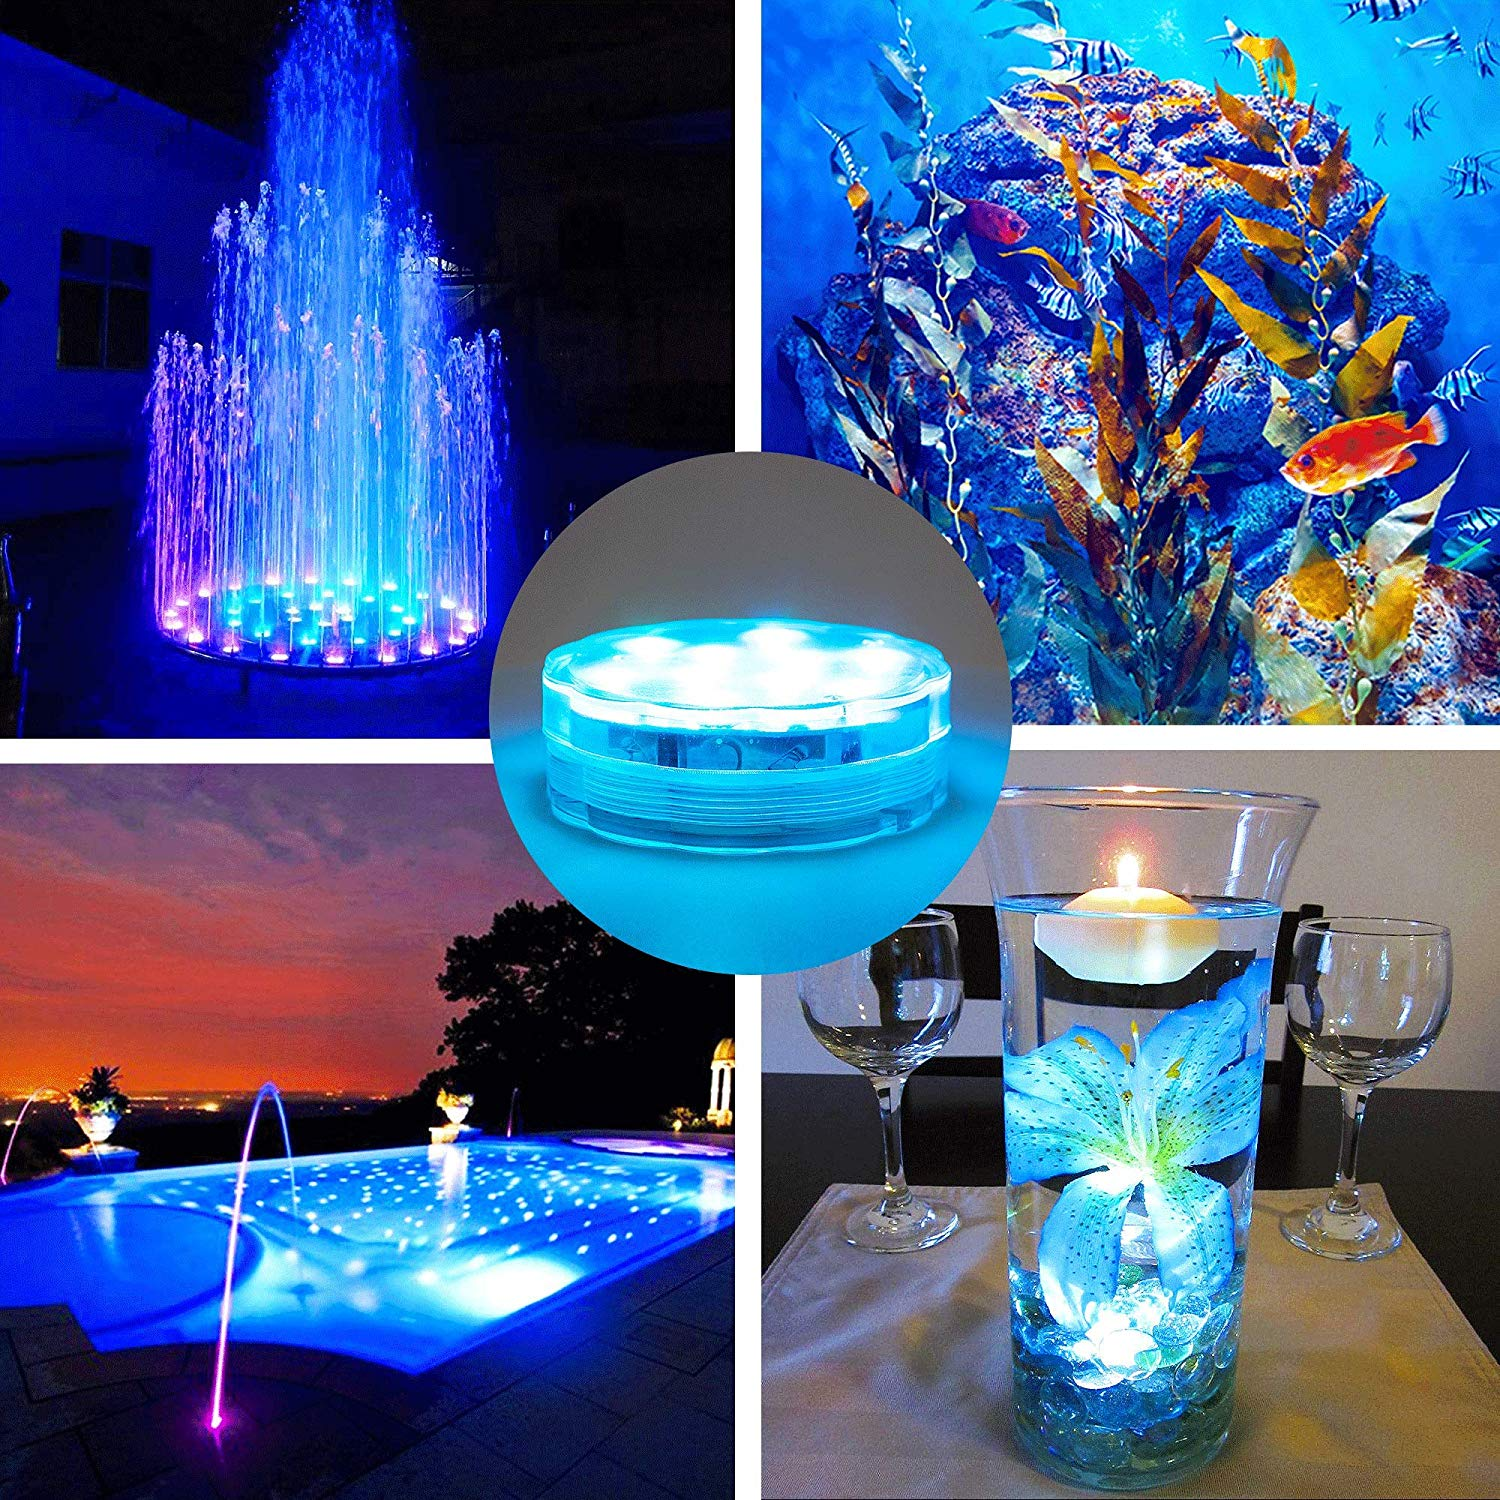 applications of remote controlled submersible led lights